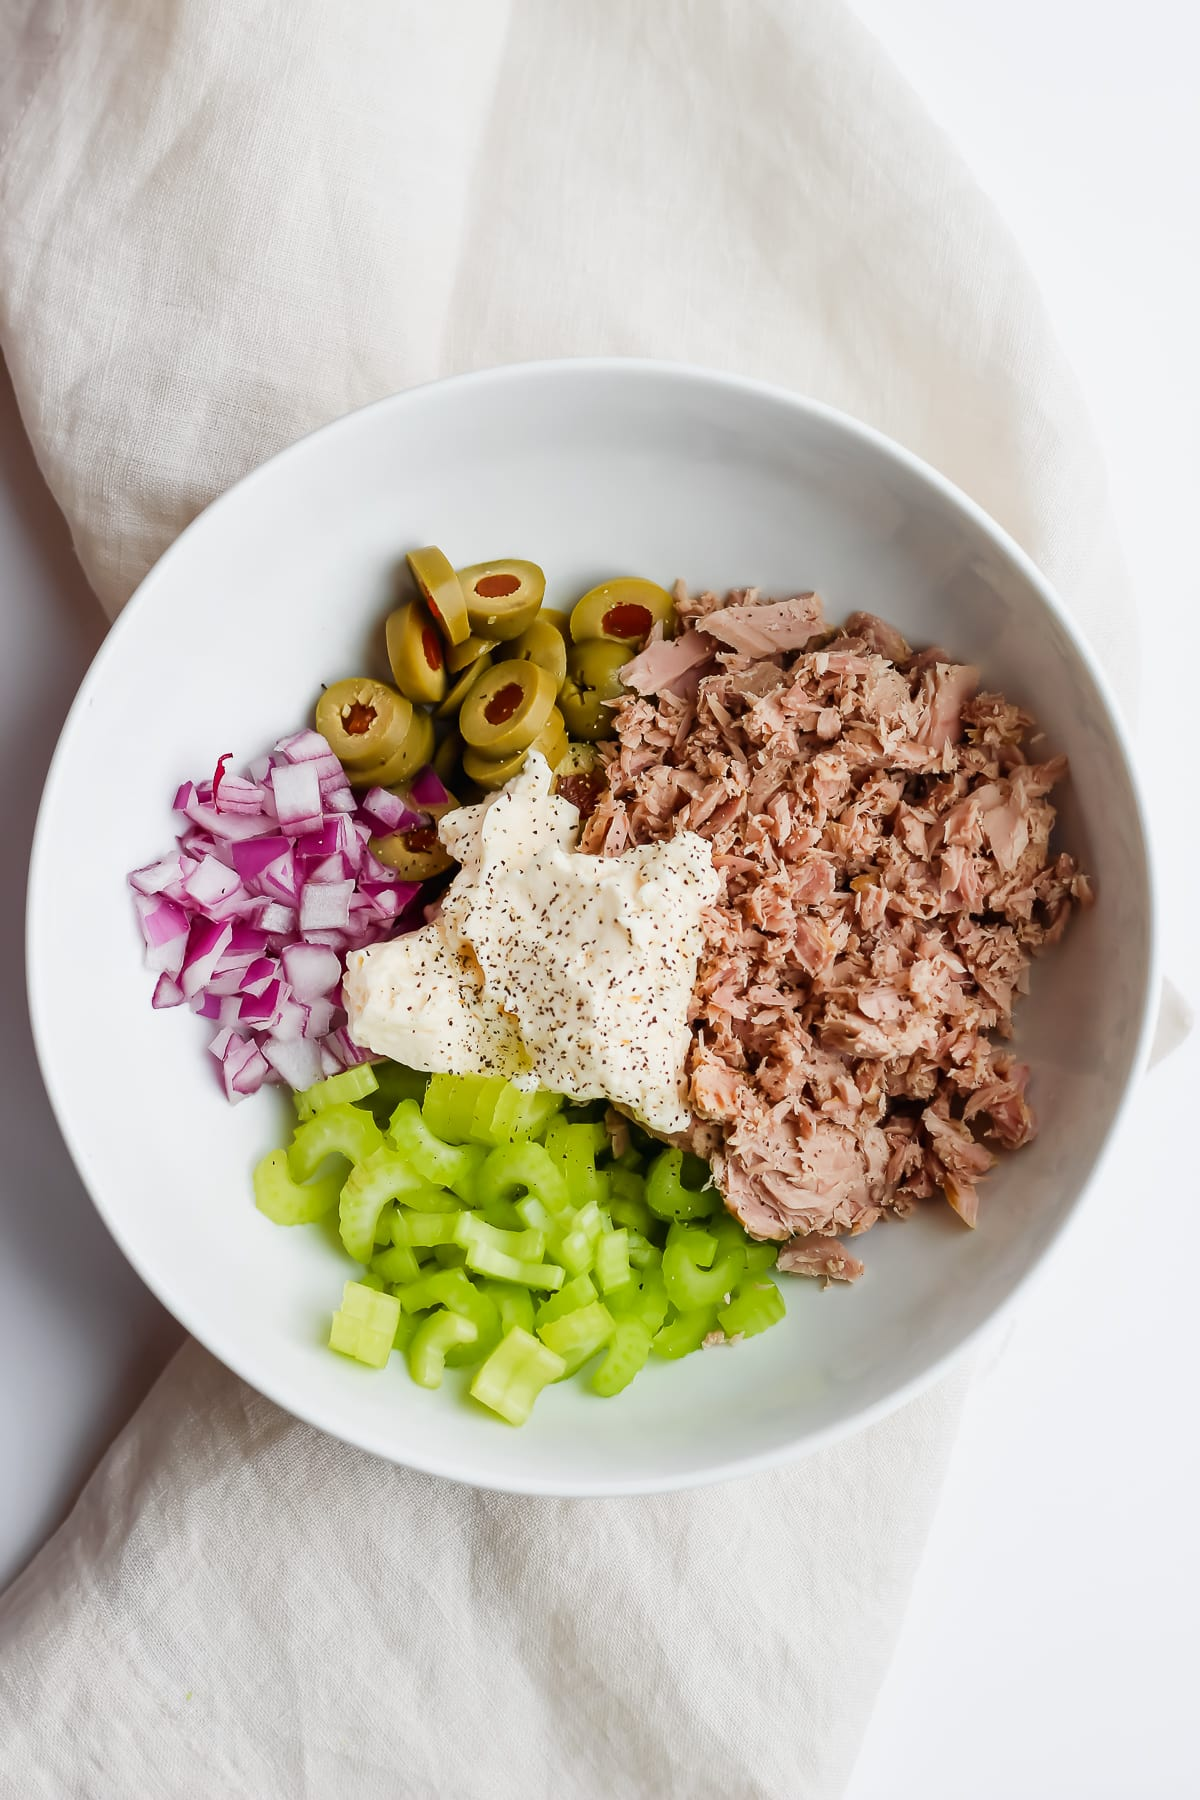 My Favorite Tuna Salad with Avocado - the perfect lunch that can be thrown together in 5 minutes! #whole30 #paleo